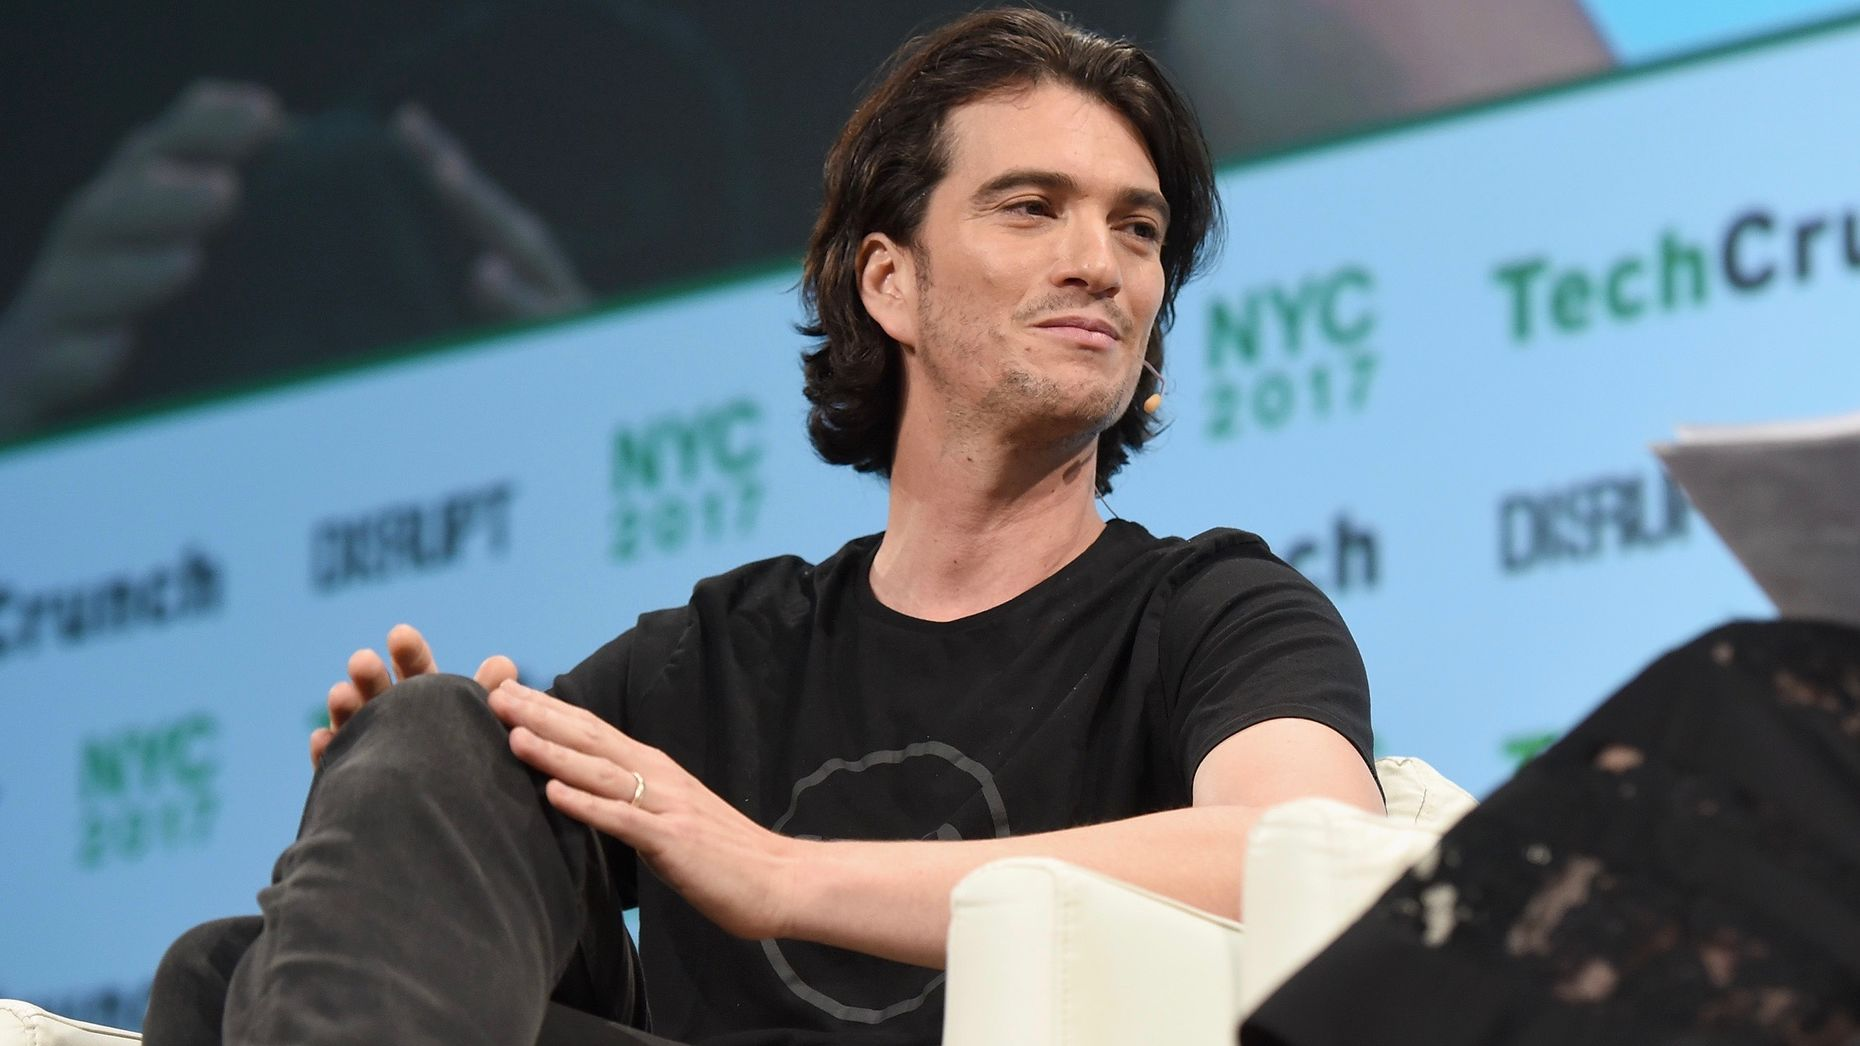 WeWork CEO Adam Neumann. Photo by Flickr/TechCrunch.